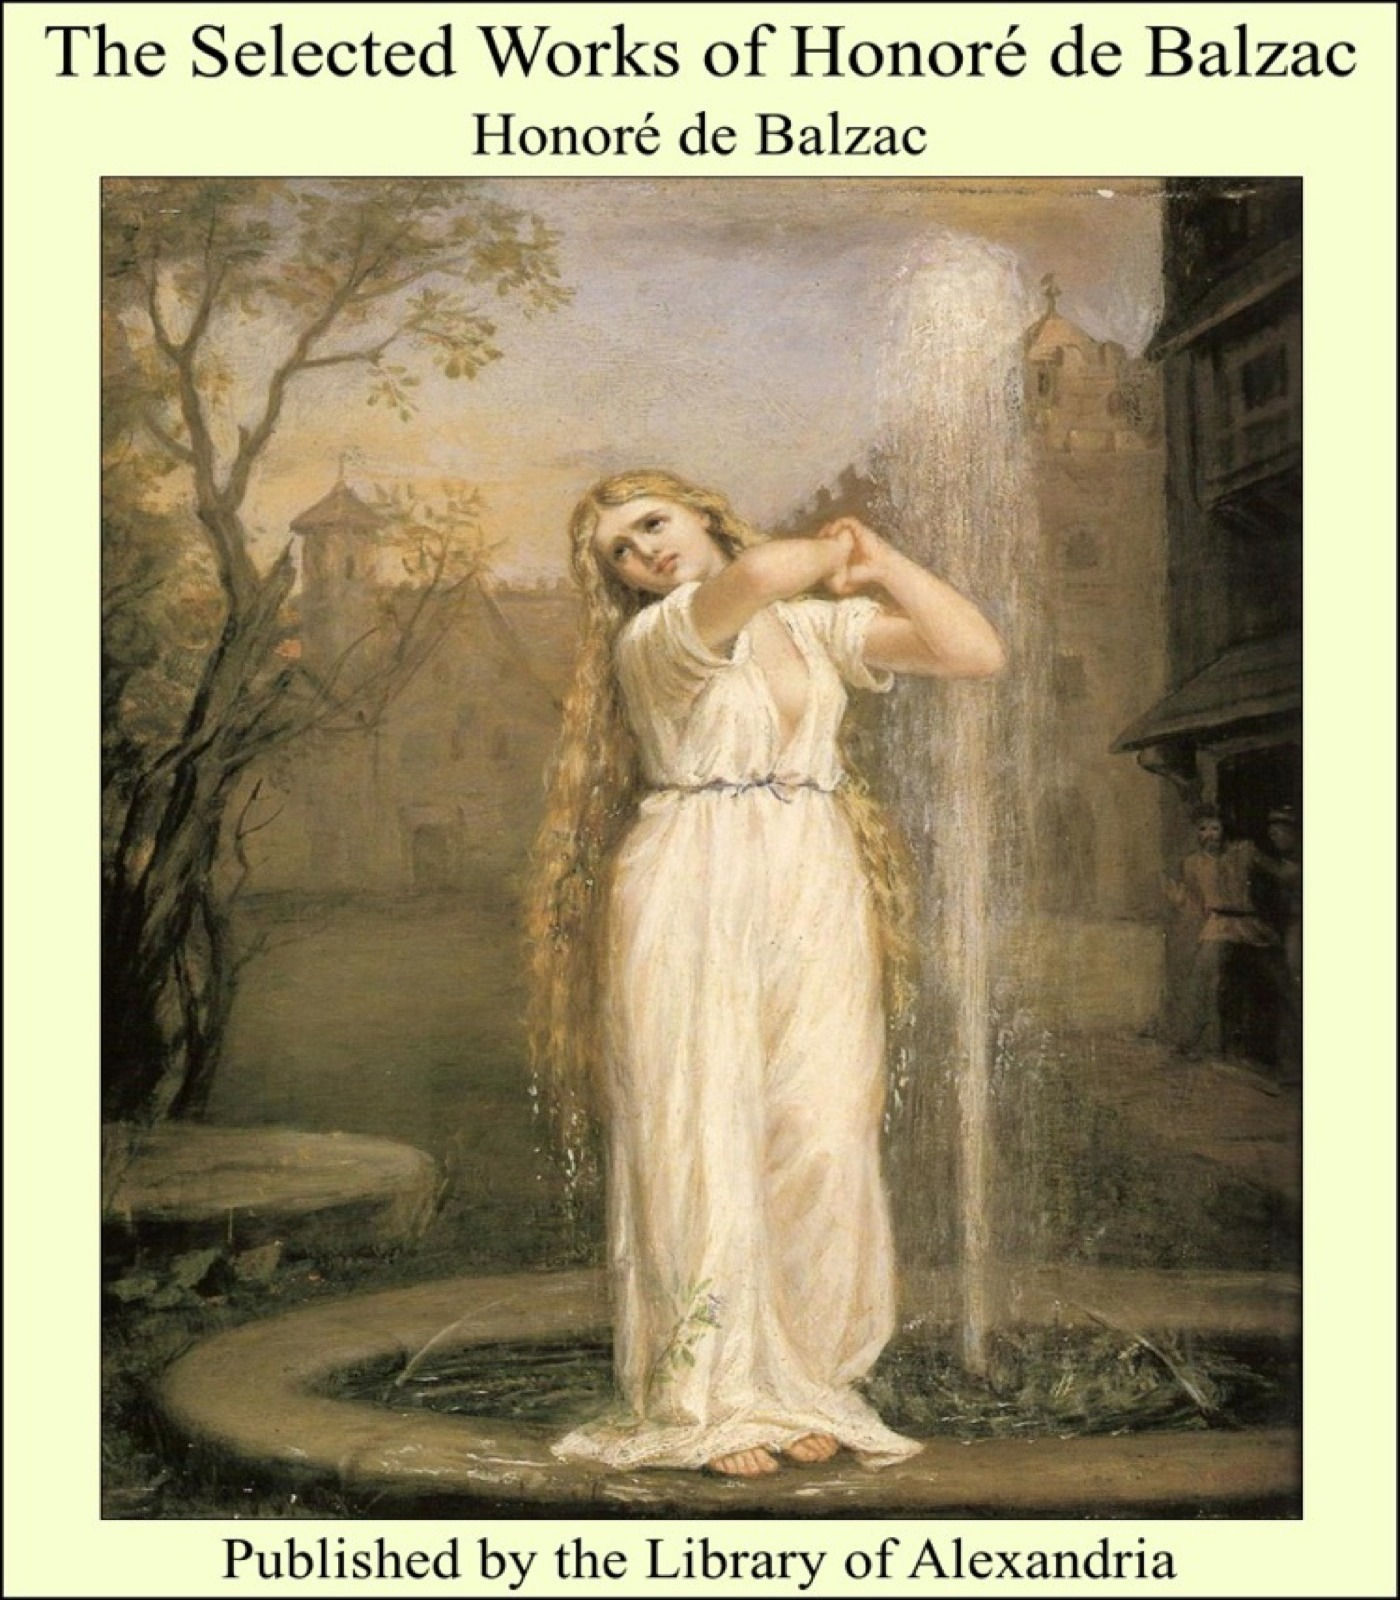 The Selected Works of Honore de Balzac By: Honore de Balzac